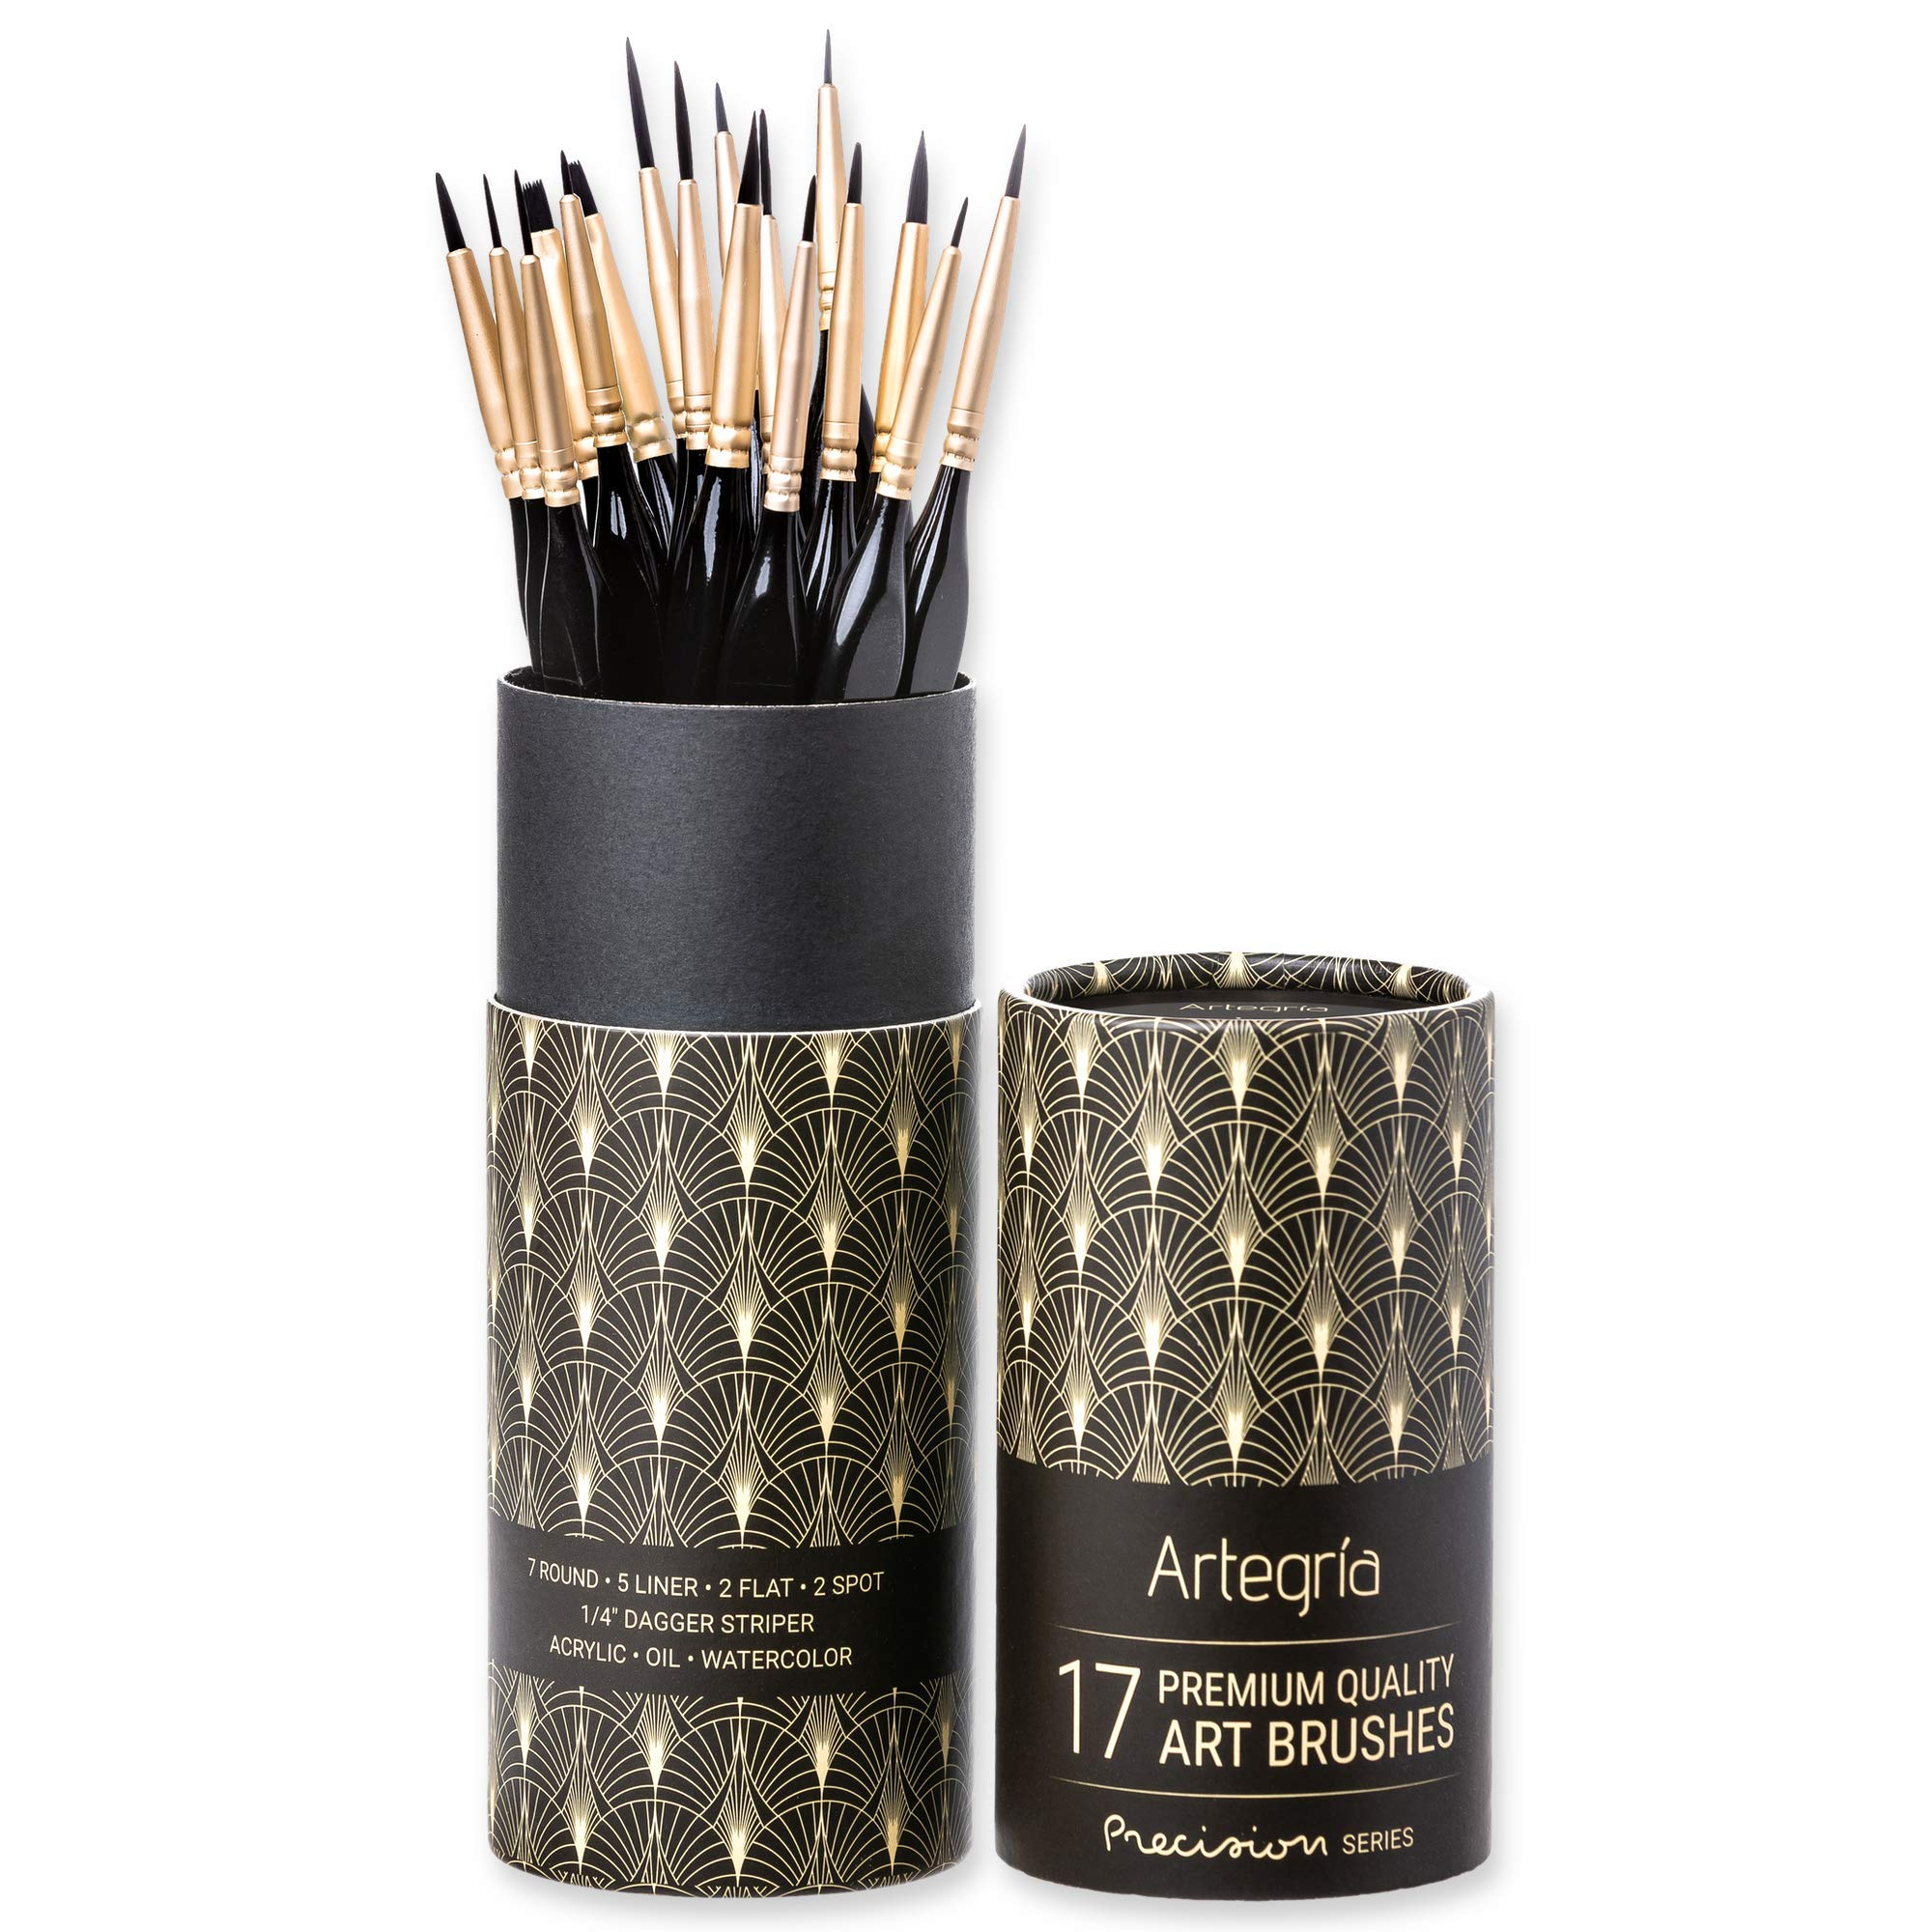 Miniature Paint Brush Set by Artegria - 17 Fine Detail Art Brushes for Acrylic Watercolor Oil with Ergonomic Handle and Travel Bag - Model Painting by Numbers Craft Scale Face Nail Artist Supplies Kit by Artegria